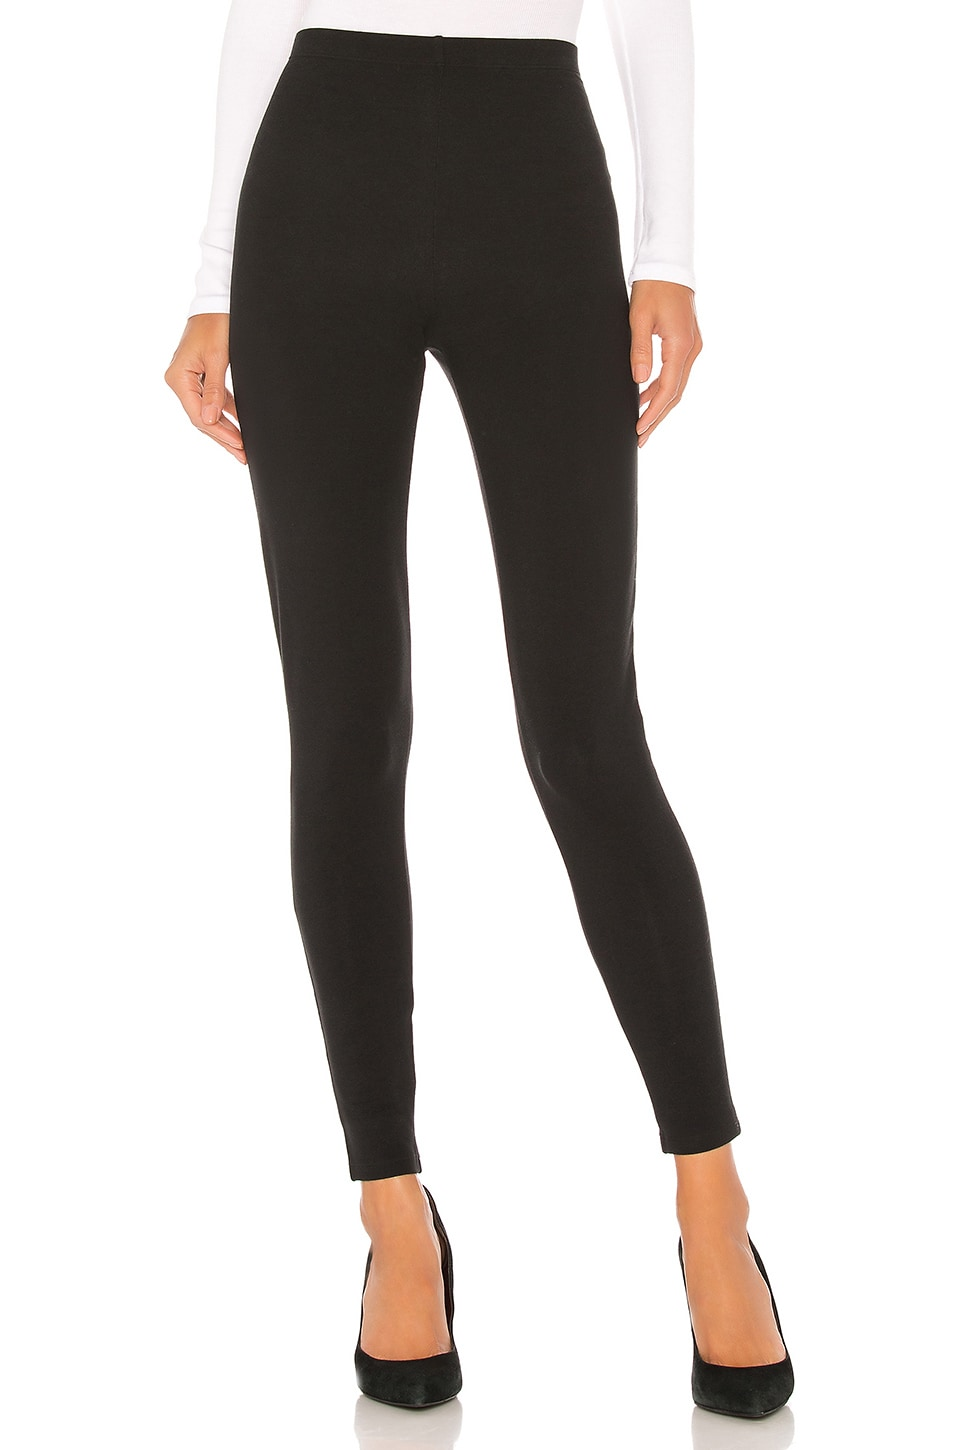 Yummie 3 In 1 Legging in Black